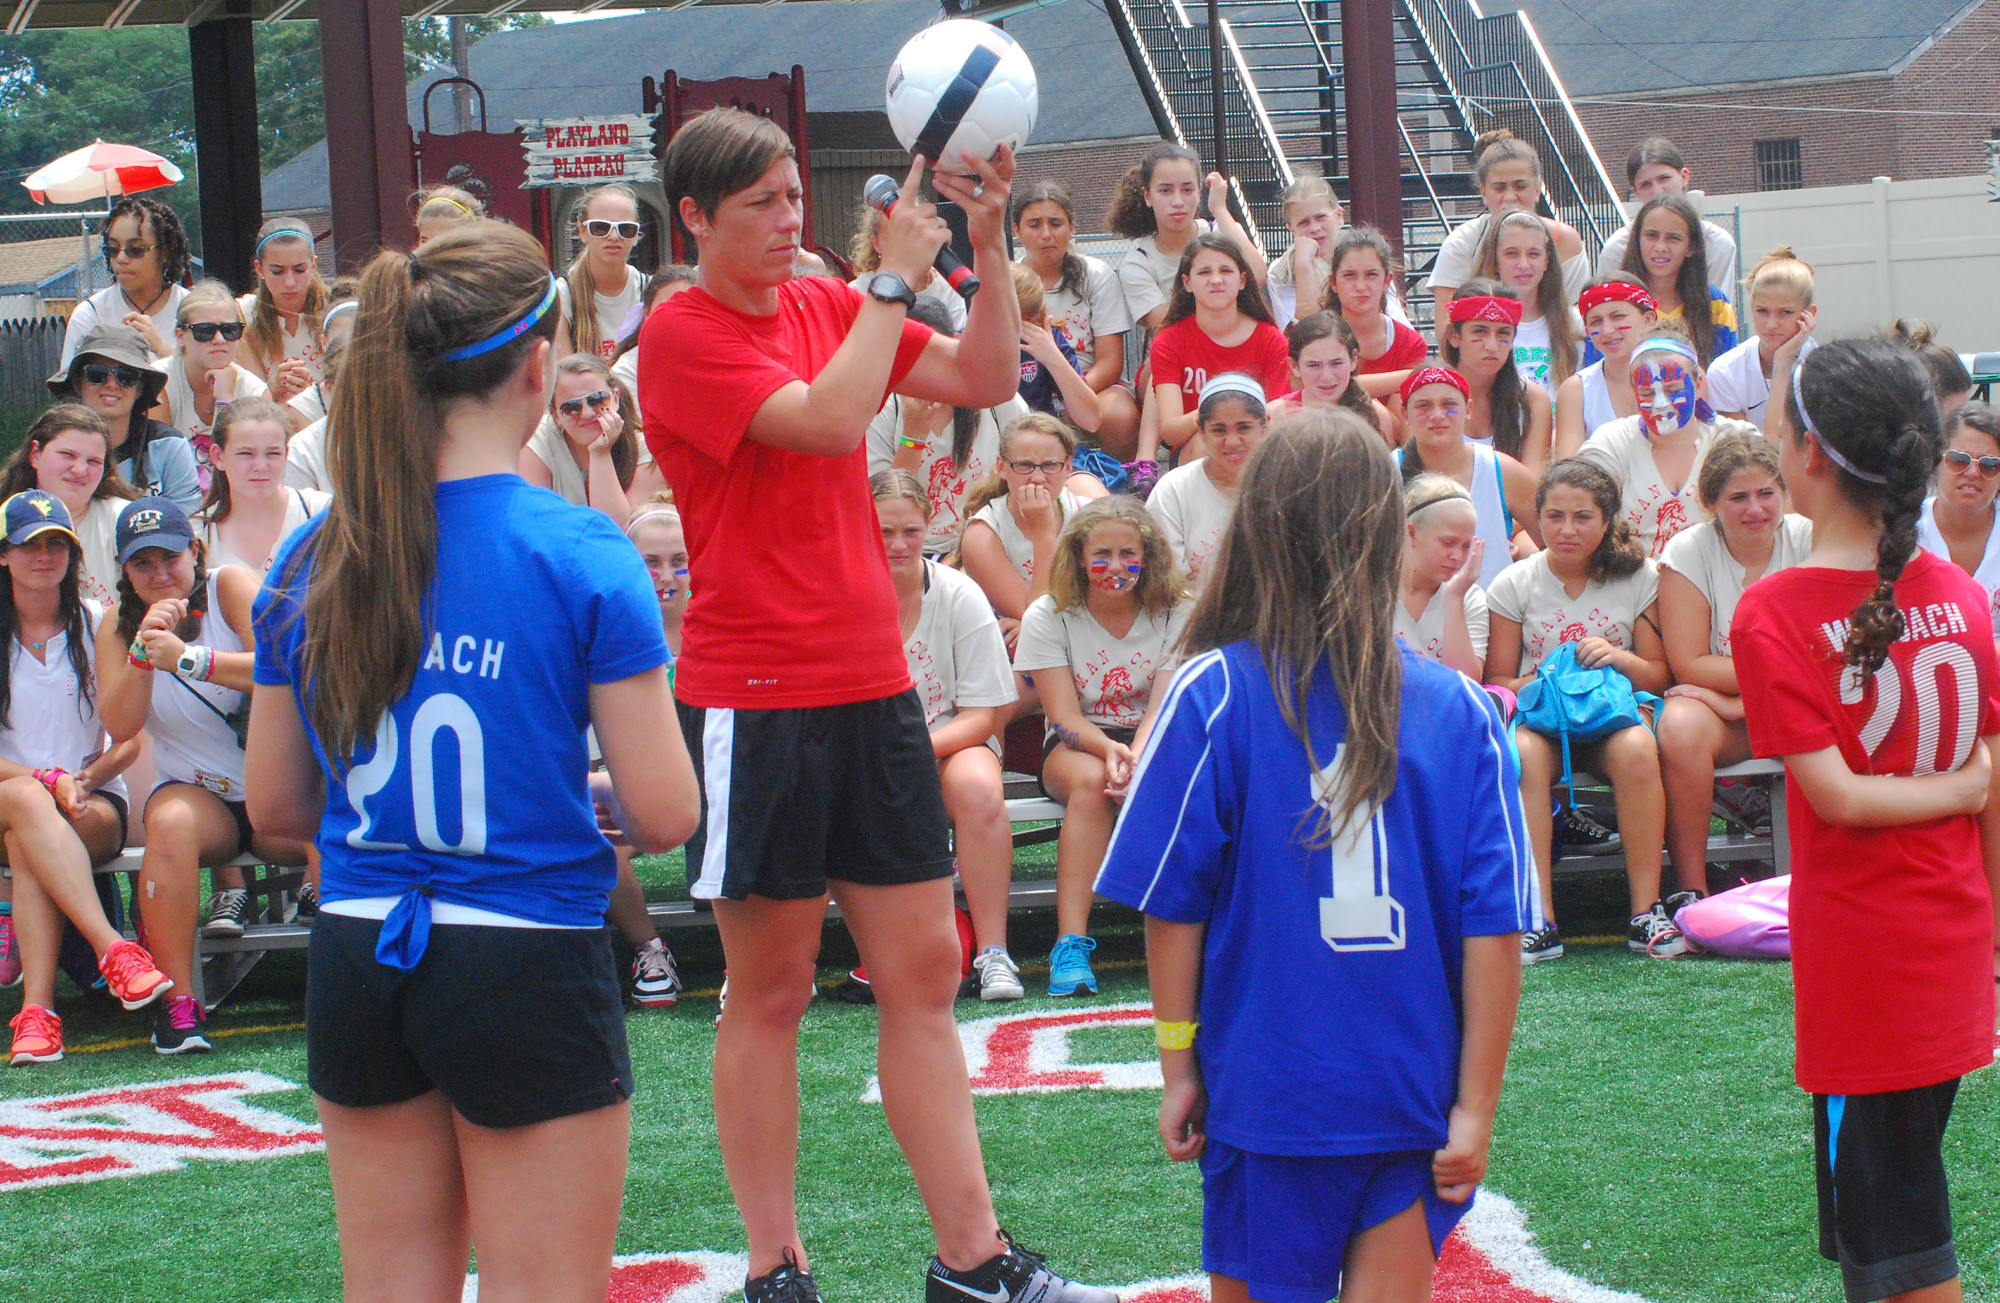 Wambach gave a lesson on heading the ball.